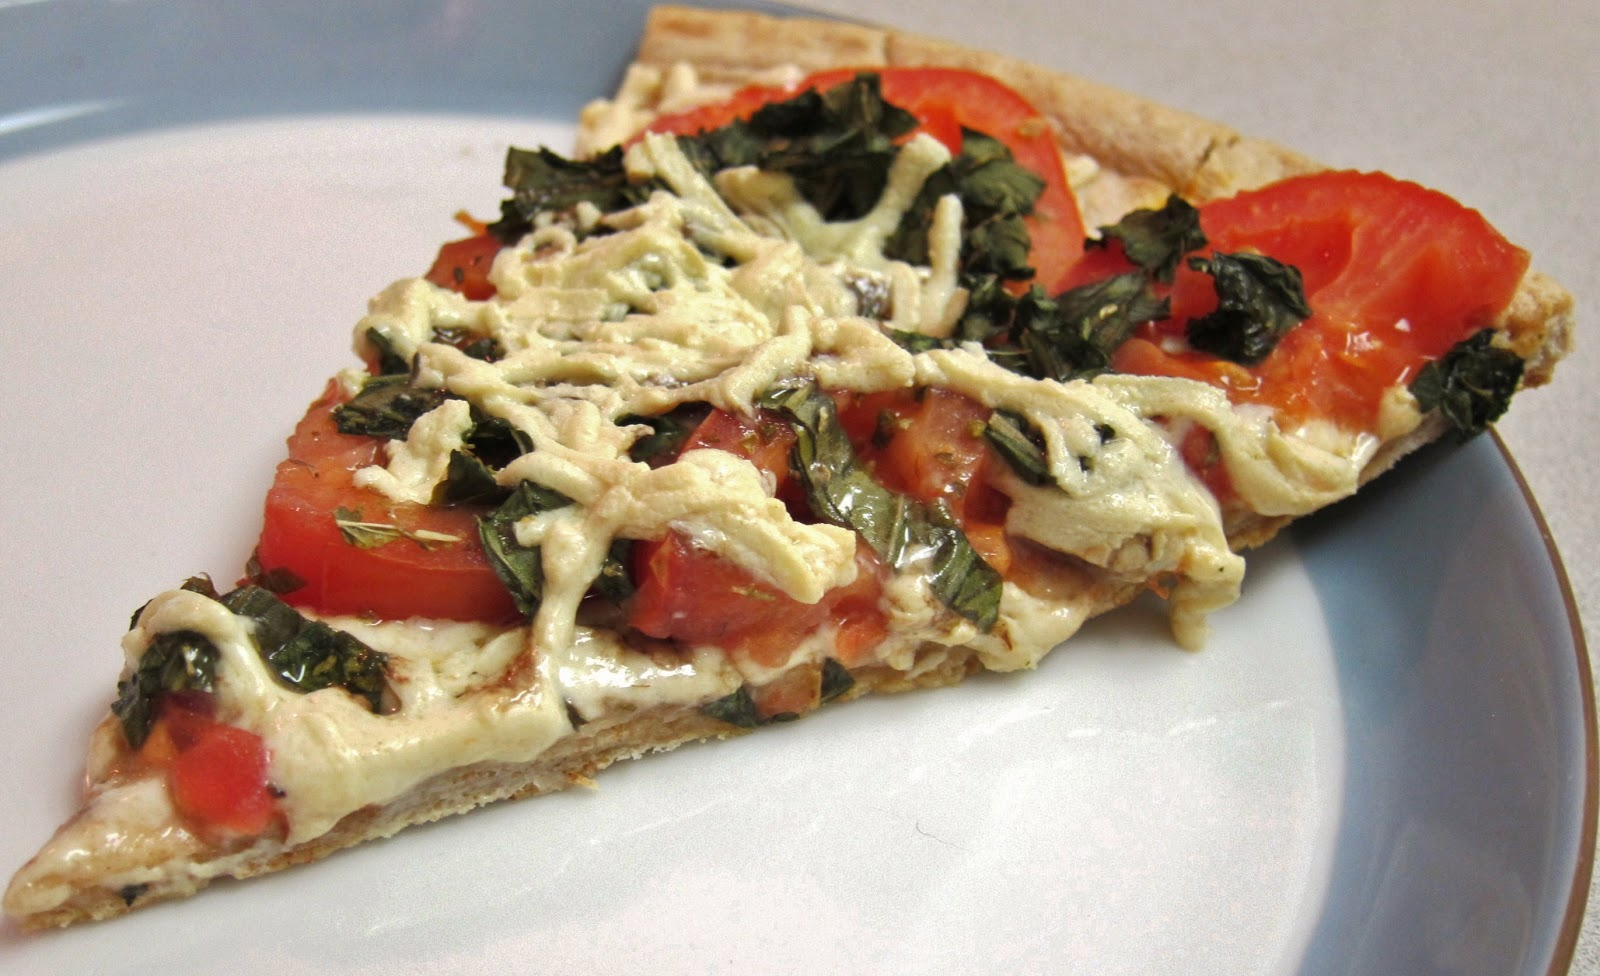 The Vegan Chronicle: Tomato-Basil Pizza